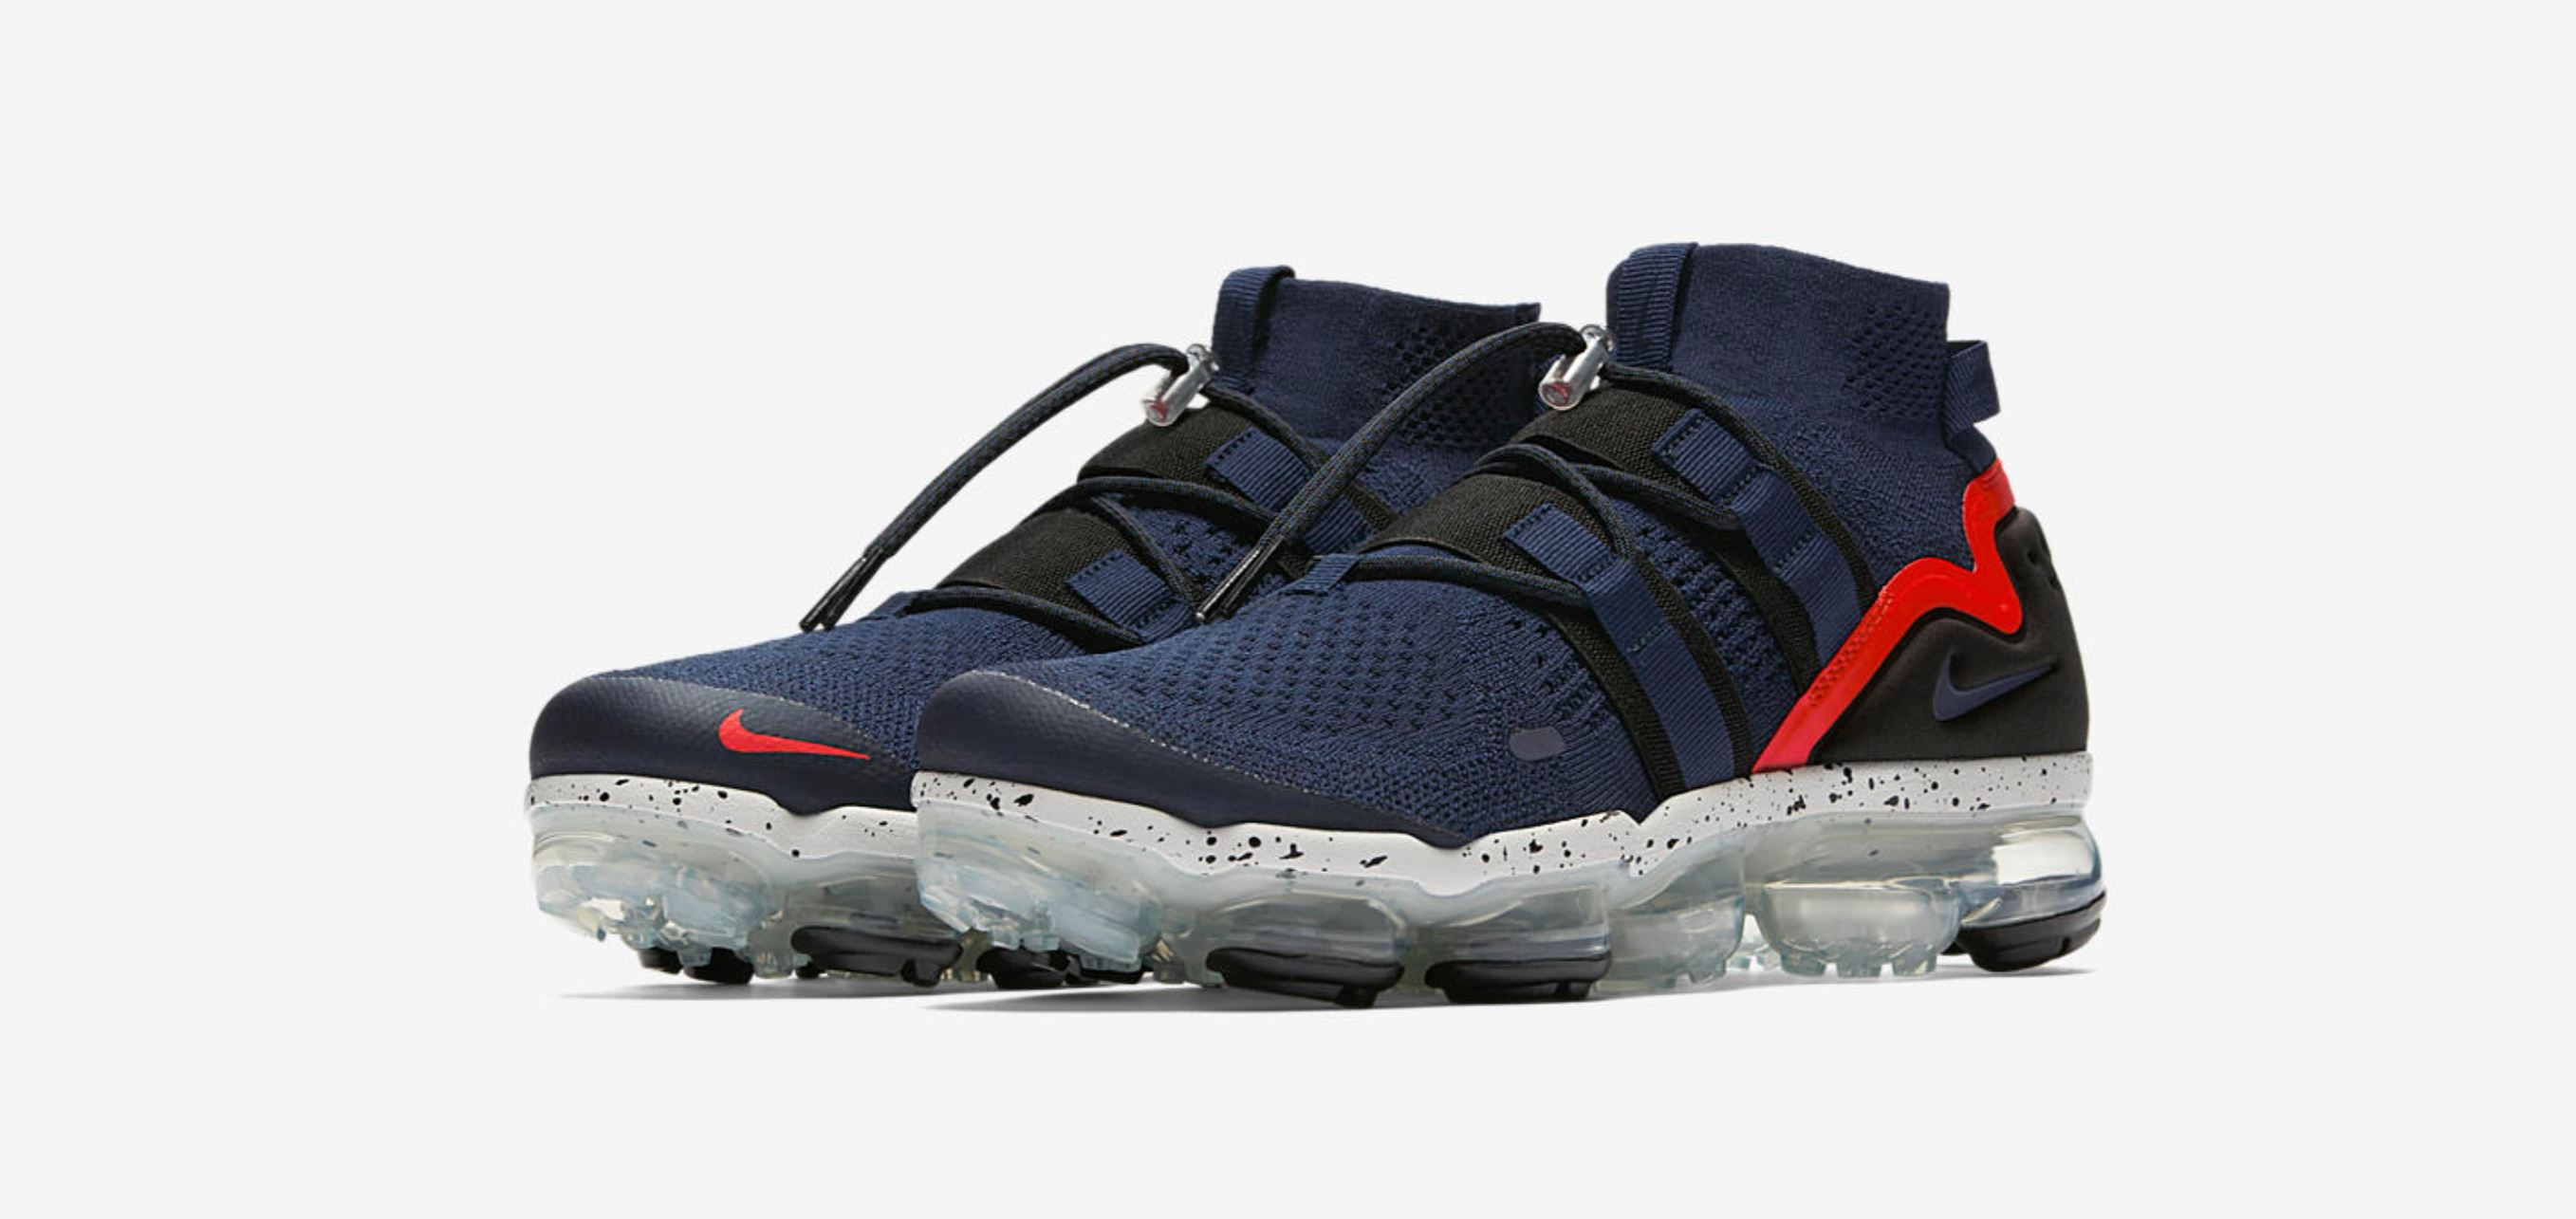 new arrival 81af0 78c62 The Nike Air VaporMax Utility Drops in a New Colorway This ...